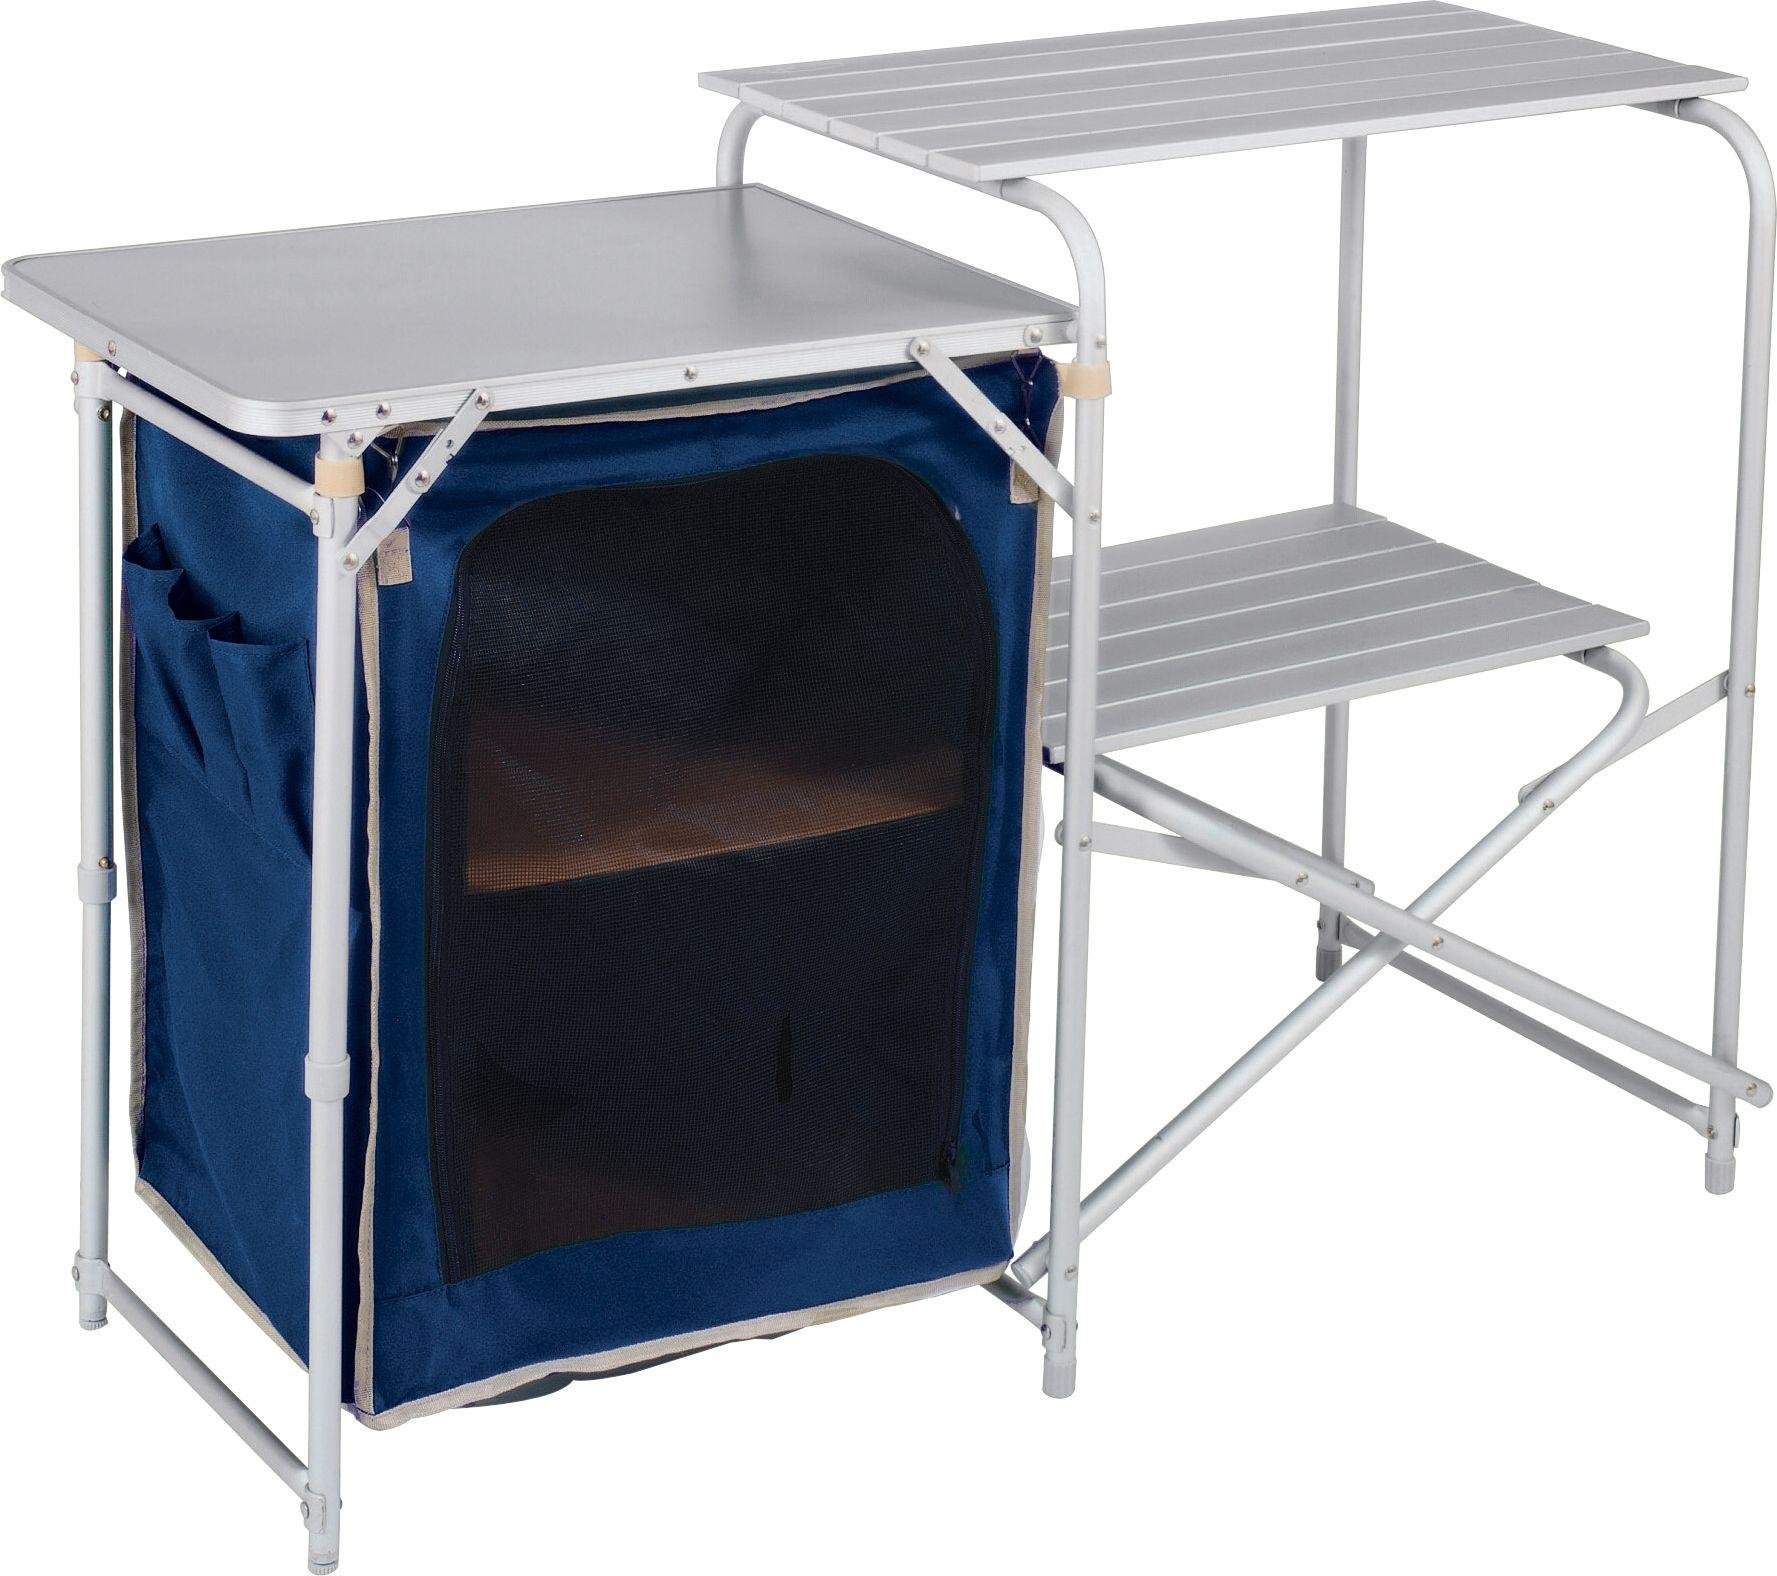 Aluminium camping kitchen and table set for Kitchen set aluminium royal